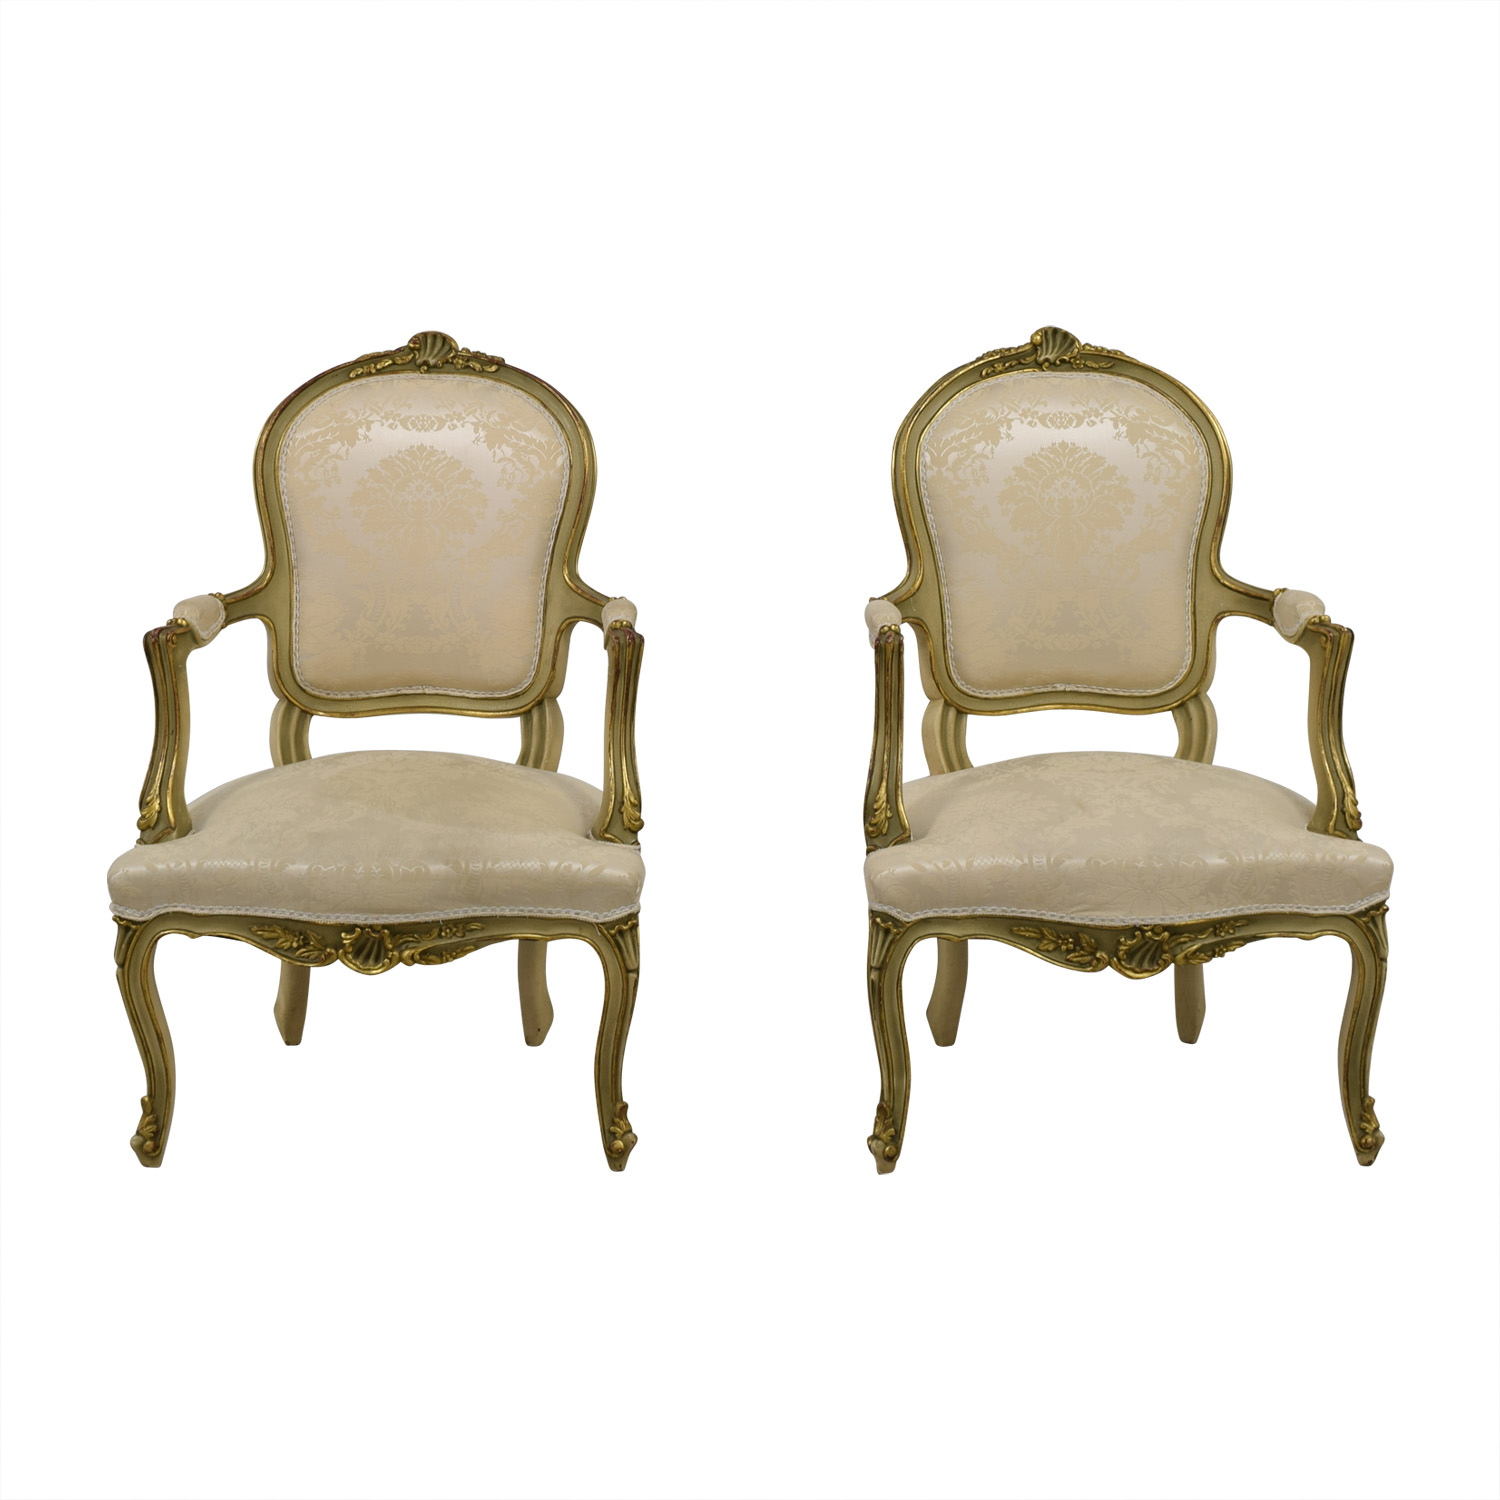 shop Antique White Jacquard Upholstered Gold Arm Chairs